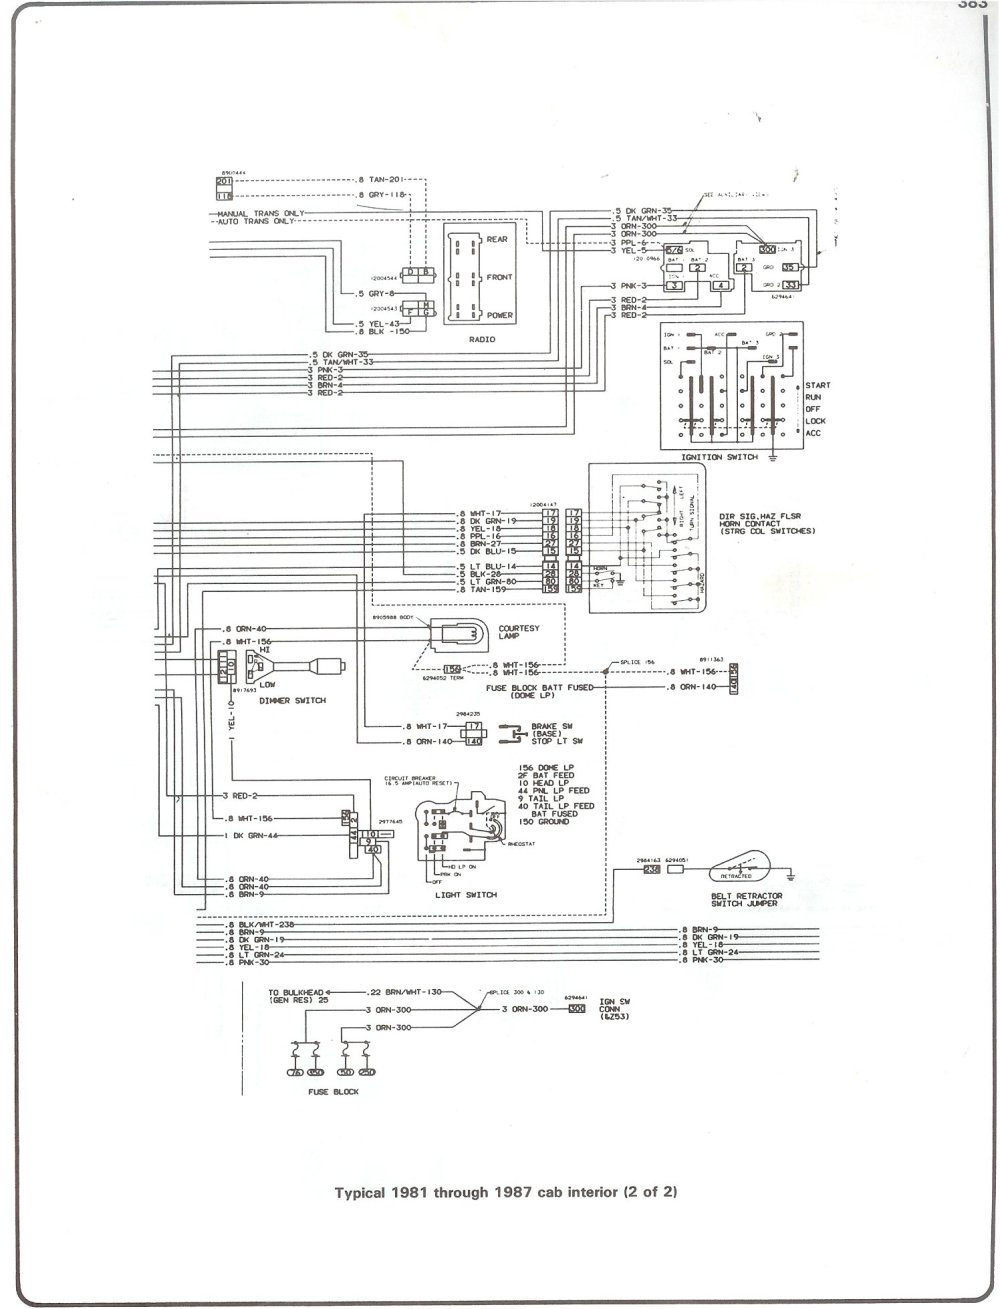 medium resolution of 1987 gmc wiring diagram wiring diagram home 1987 gmc sierra fuel pump wiring diagram 1987 gmc wiring diagram